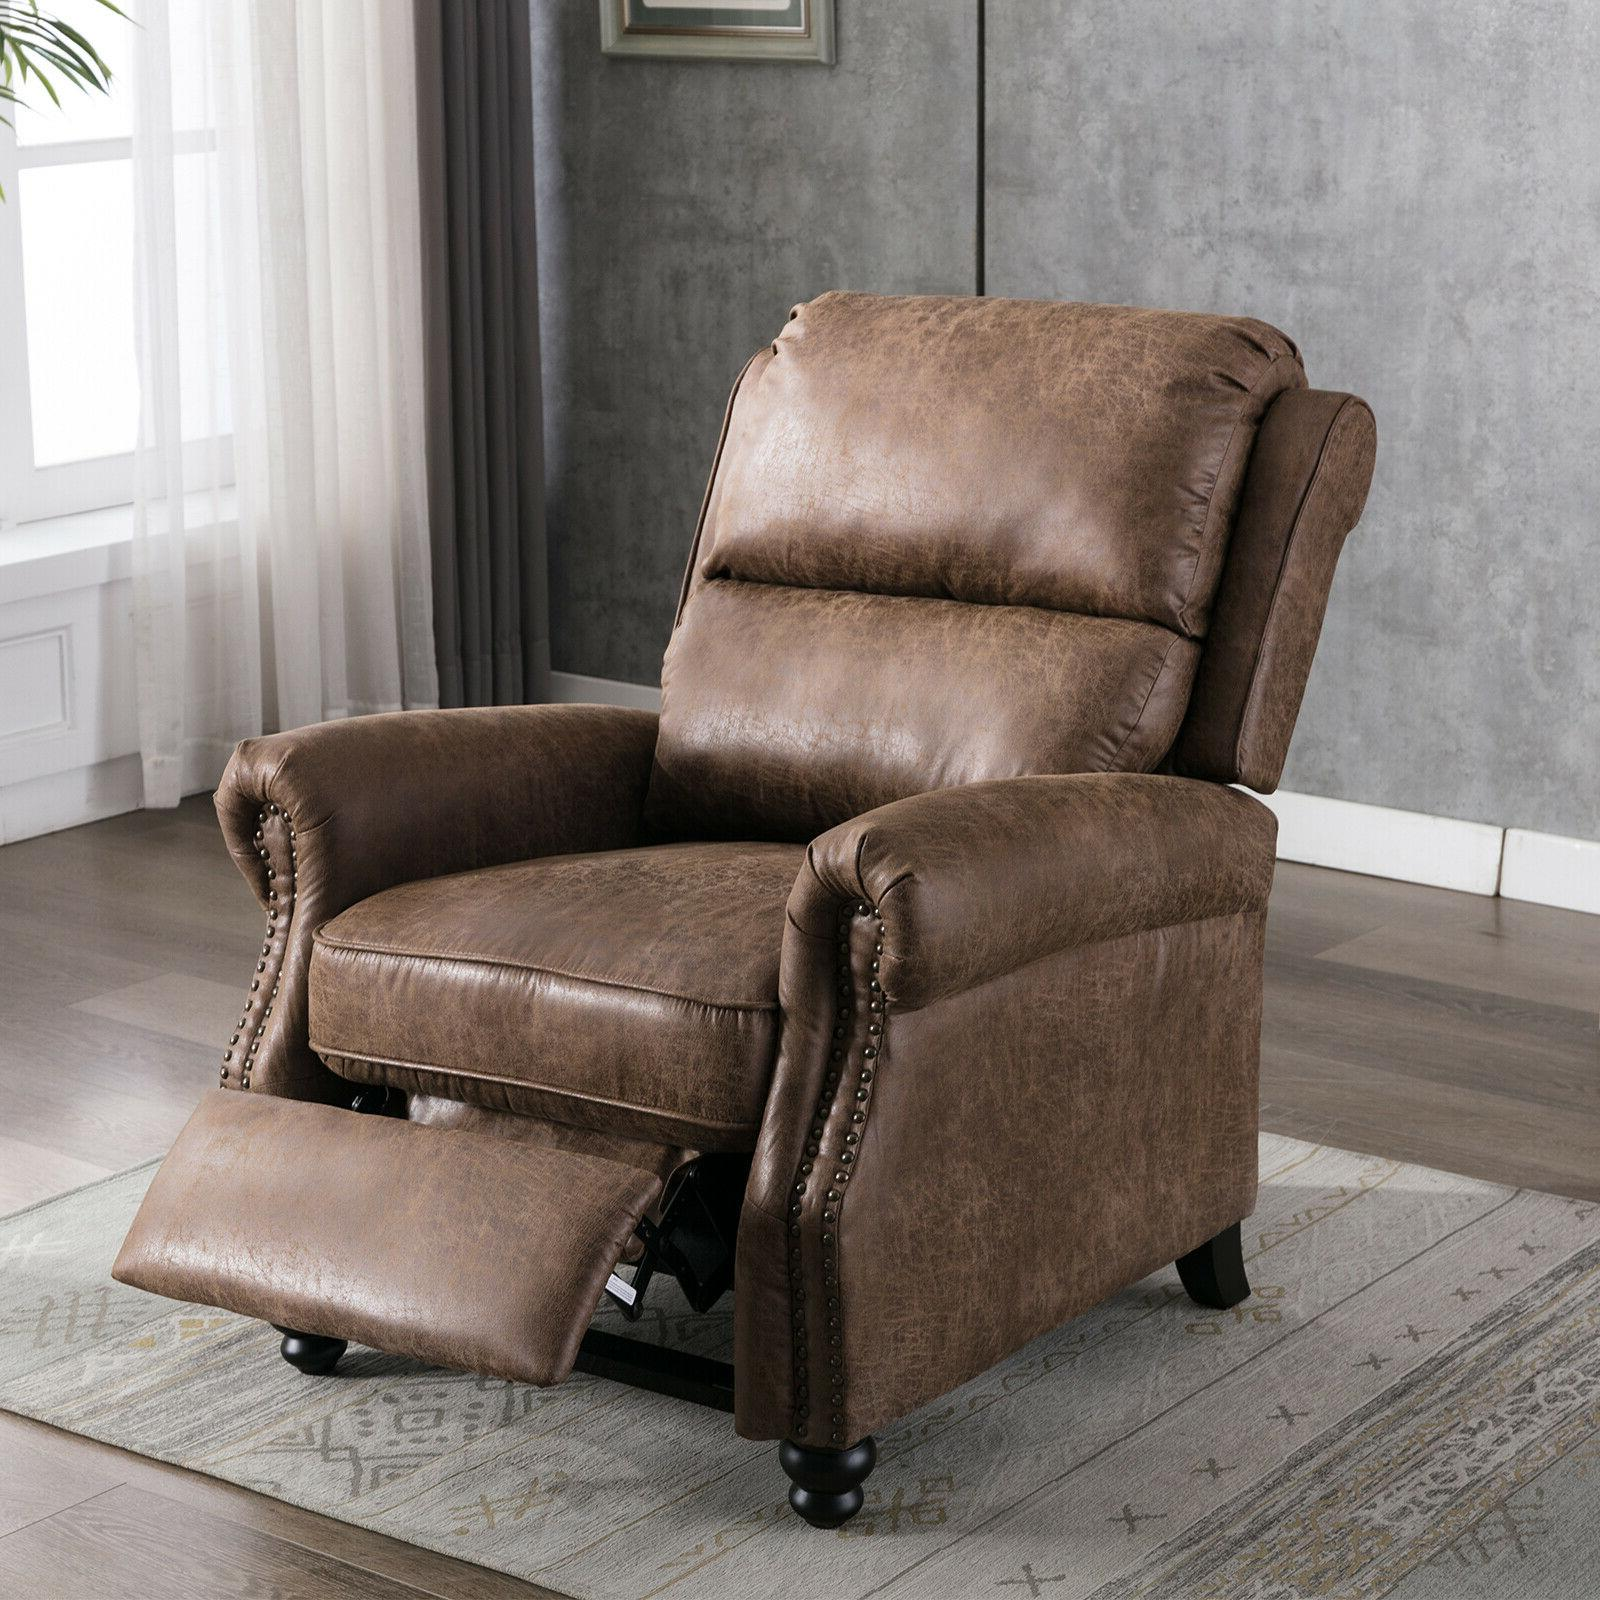 Push Back Recliner Chair Reclining Sofa With Roll Arm Thickn